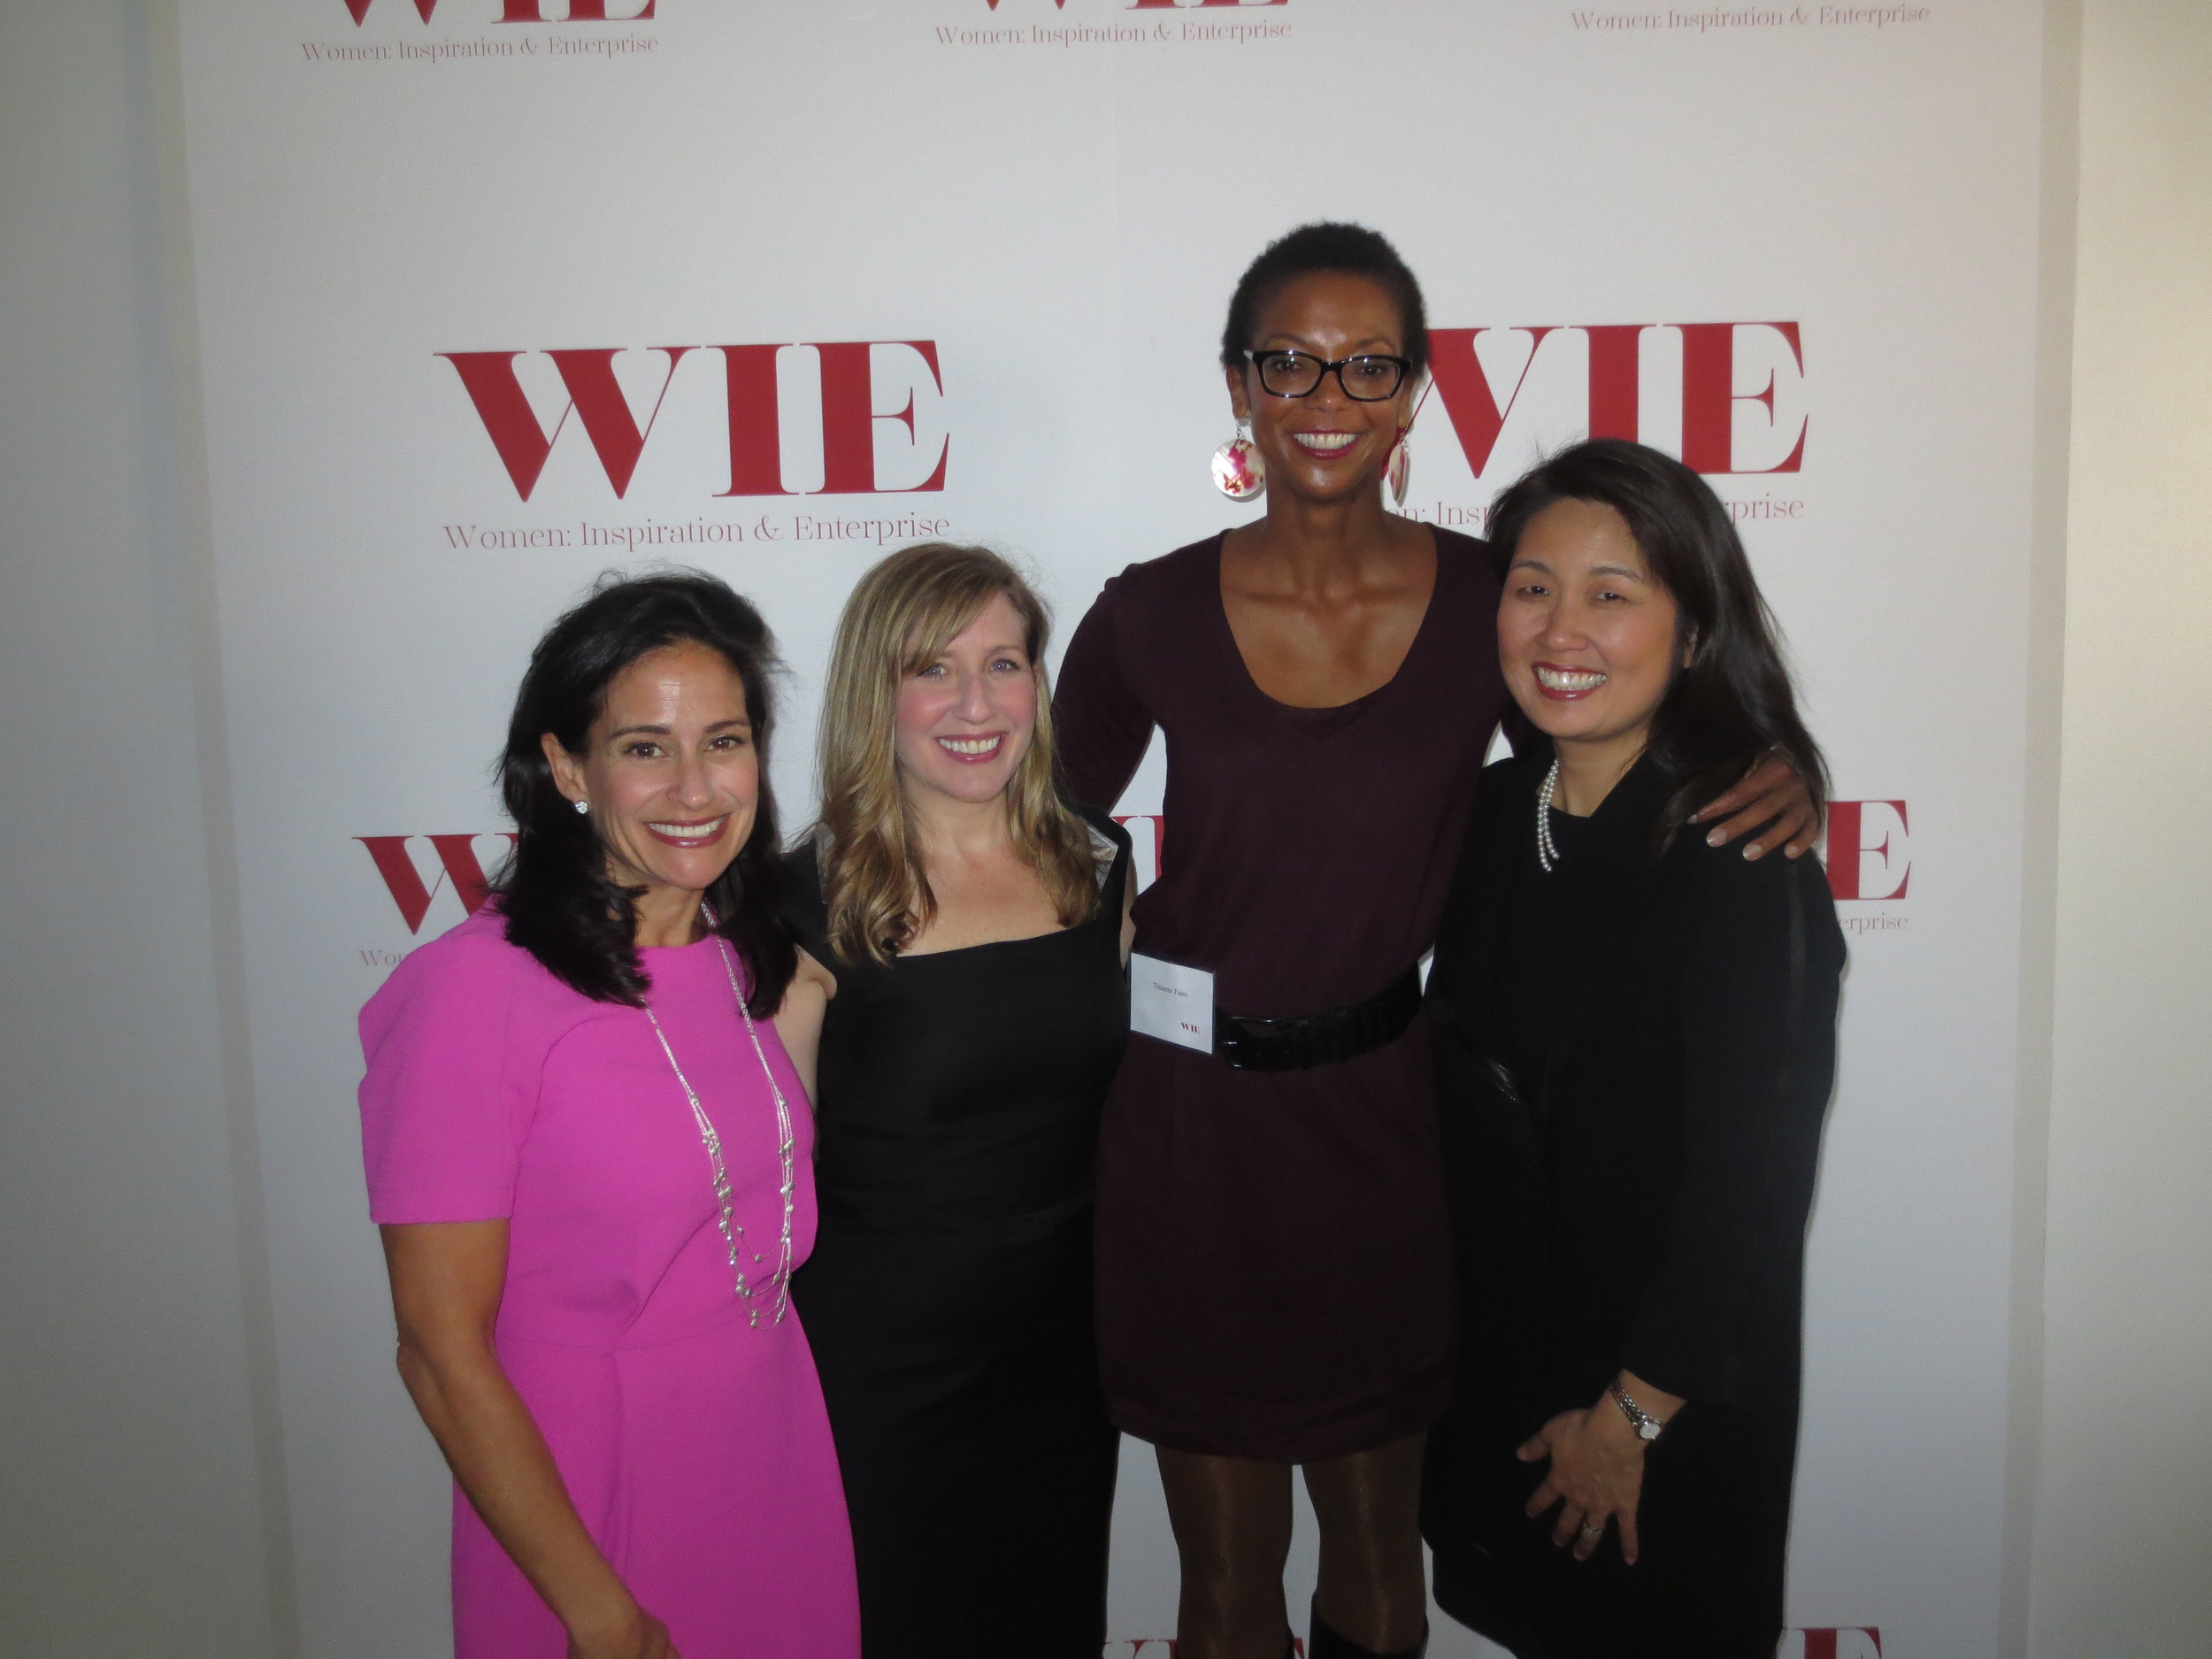 With cause marketer Susan McPherson, Jennifer Dulski, President & COO of Change.org and Audrey Choi, Managing Director and Head of Morgan Stanley Global Sustainable Finance after their talk on For Profit For Good - Impact Investing For Positive Change.